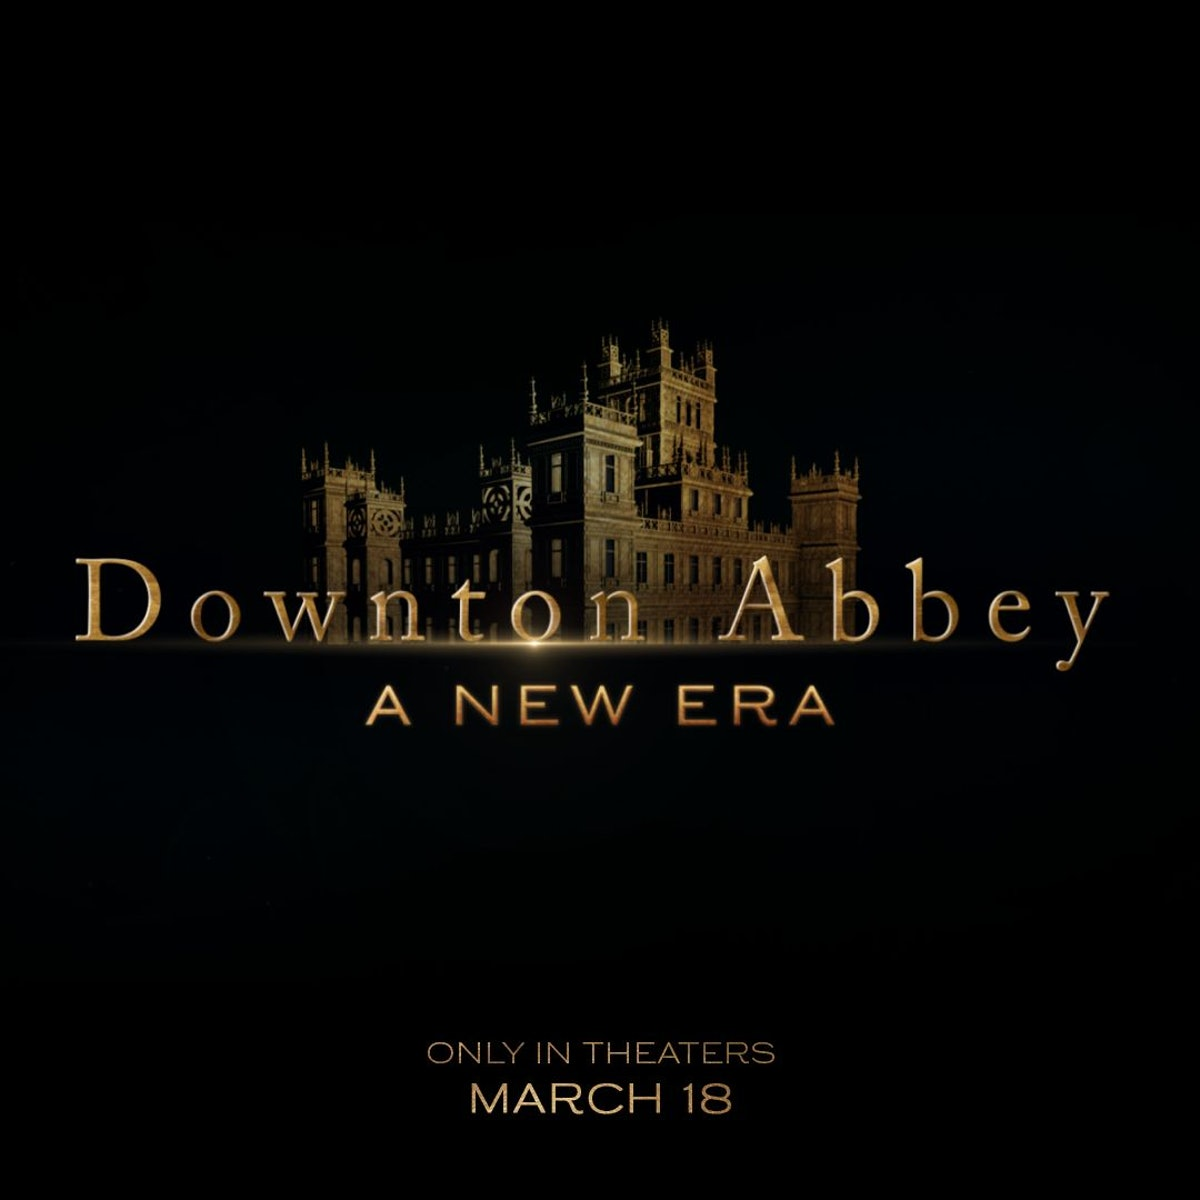 The title card for the new 'Downton Abbey' film, 'Downton Abbey: A New Era'